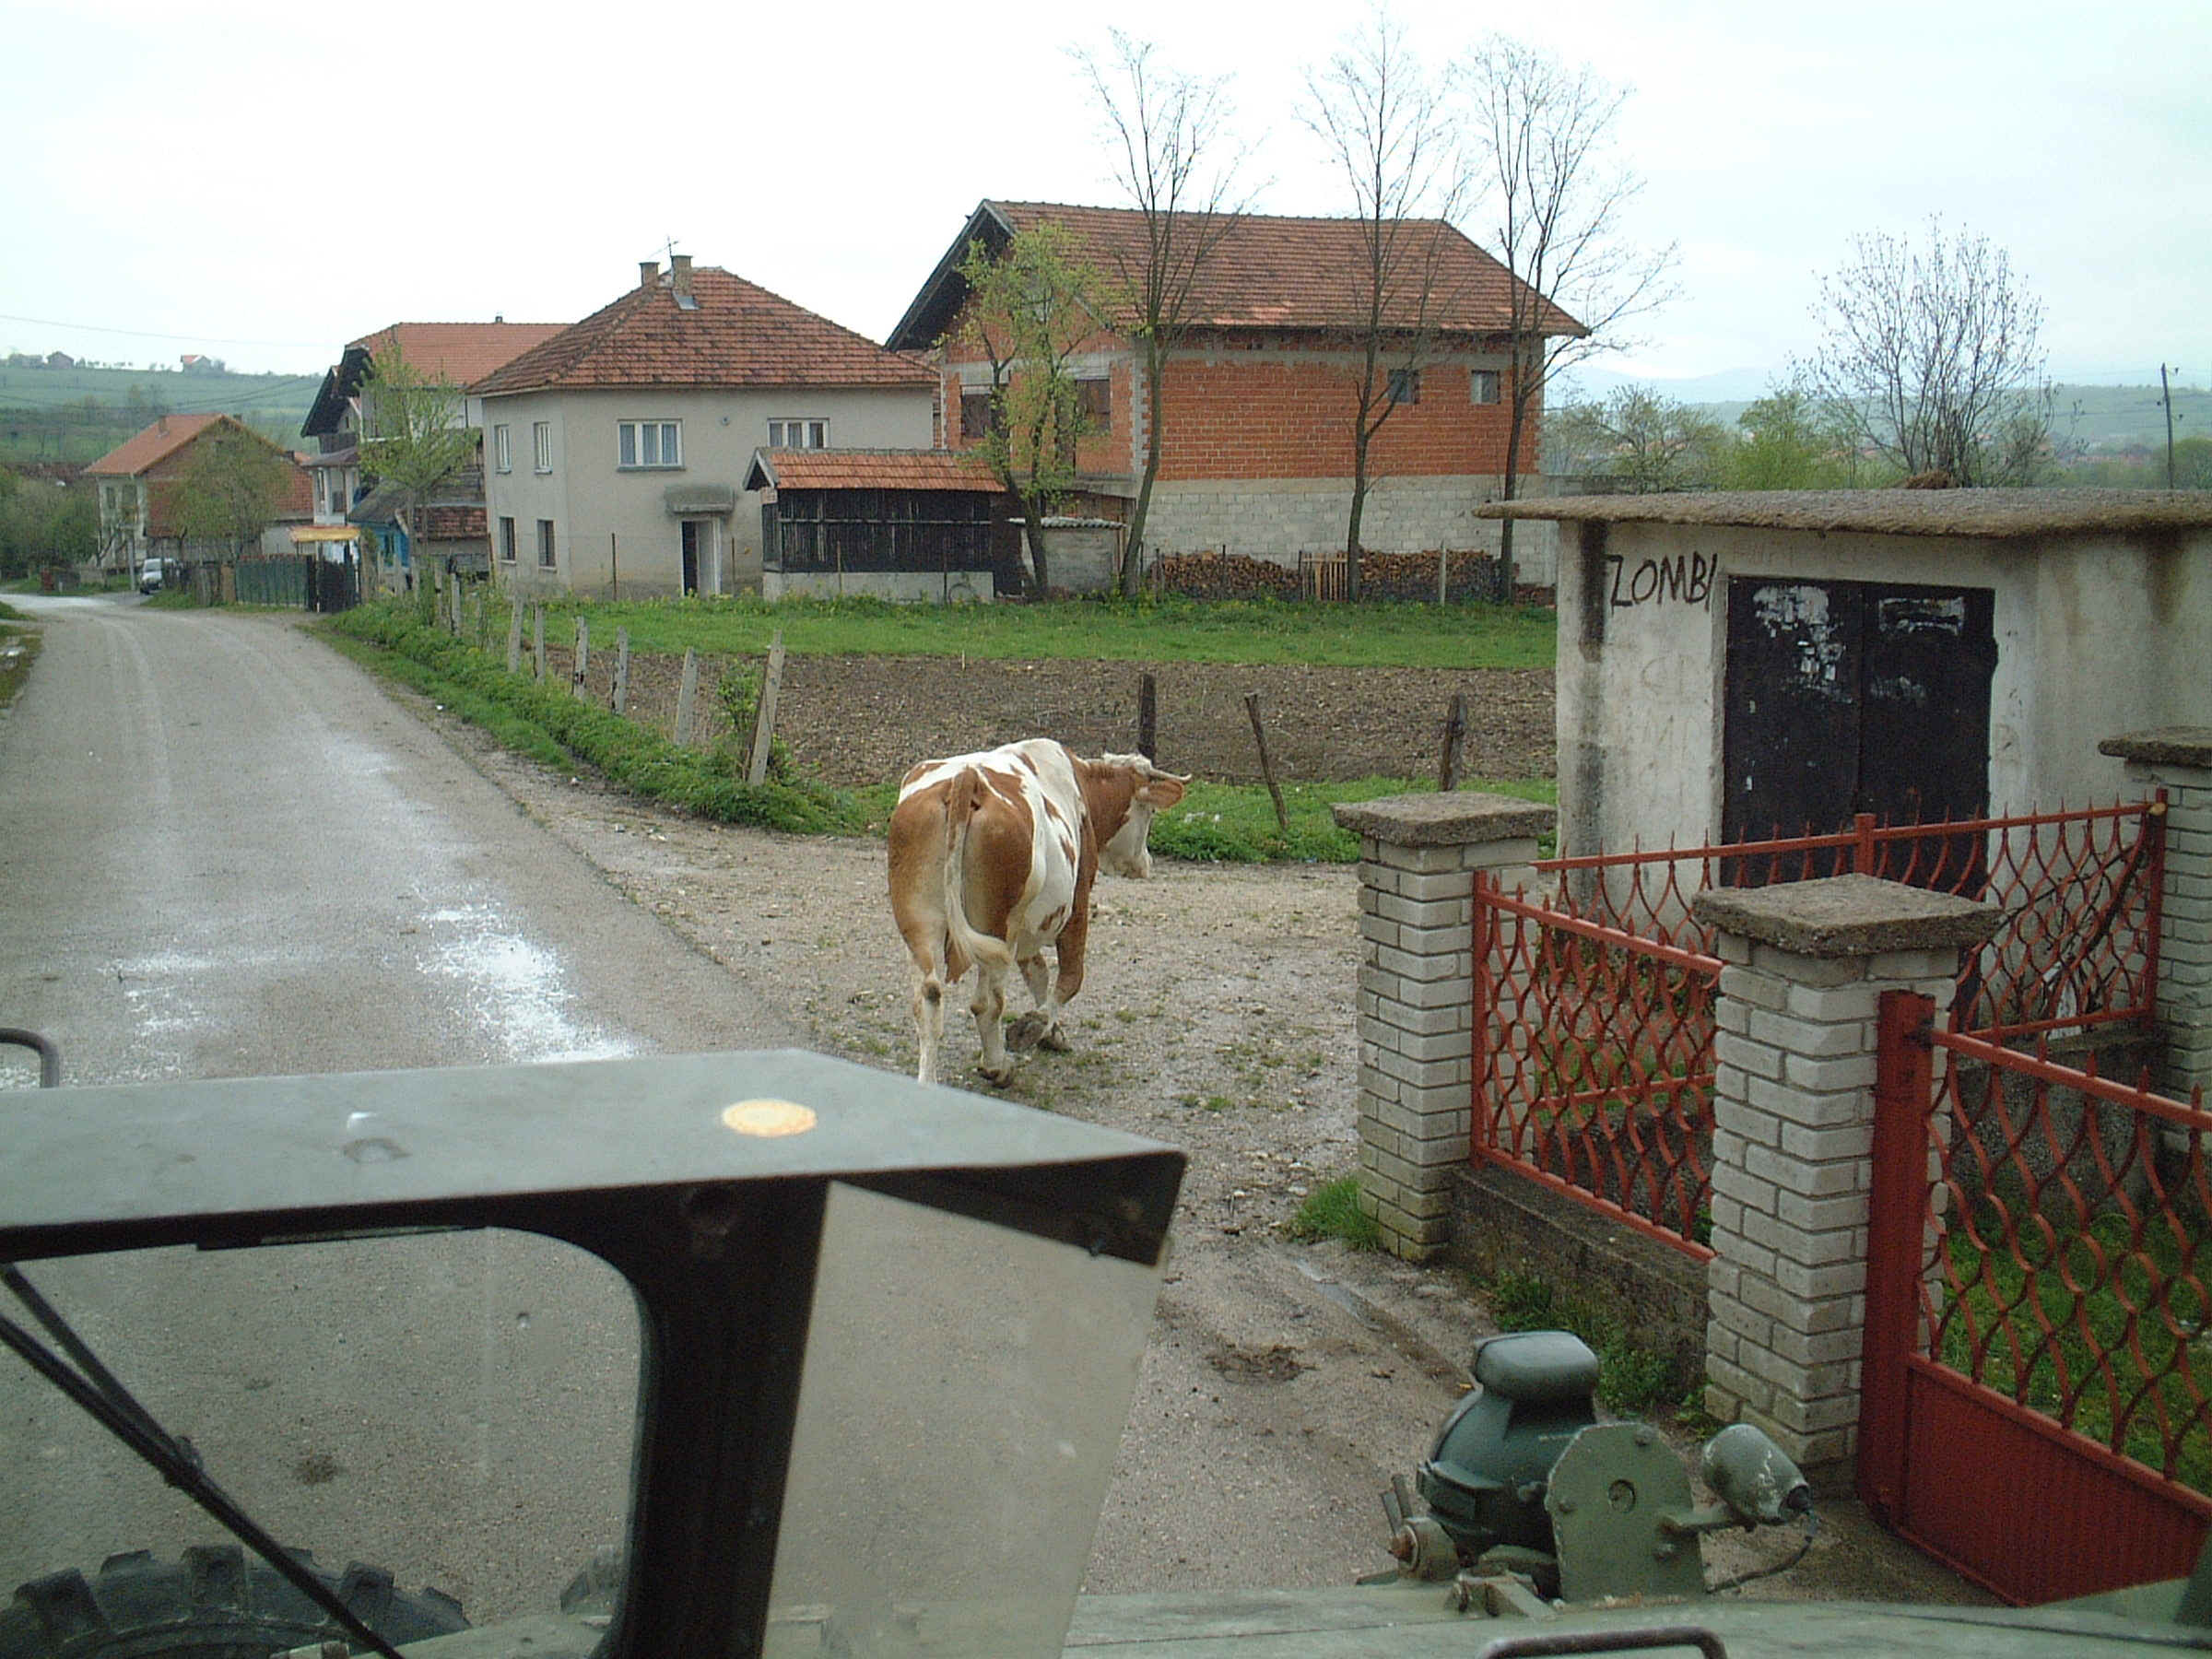 Cow out for a walk.JPG (780234 bytes)